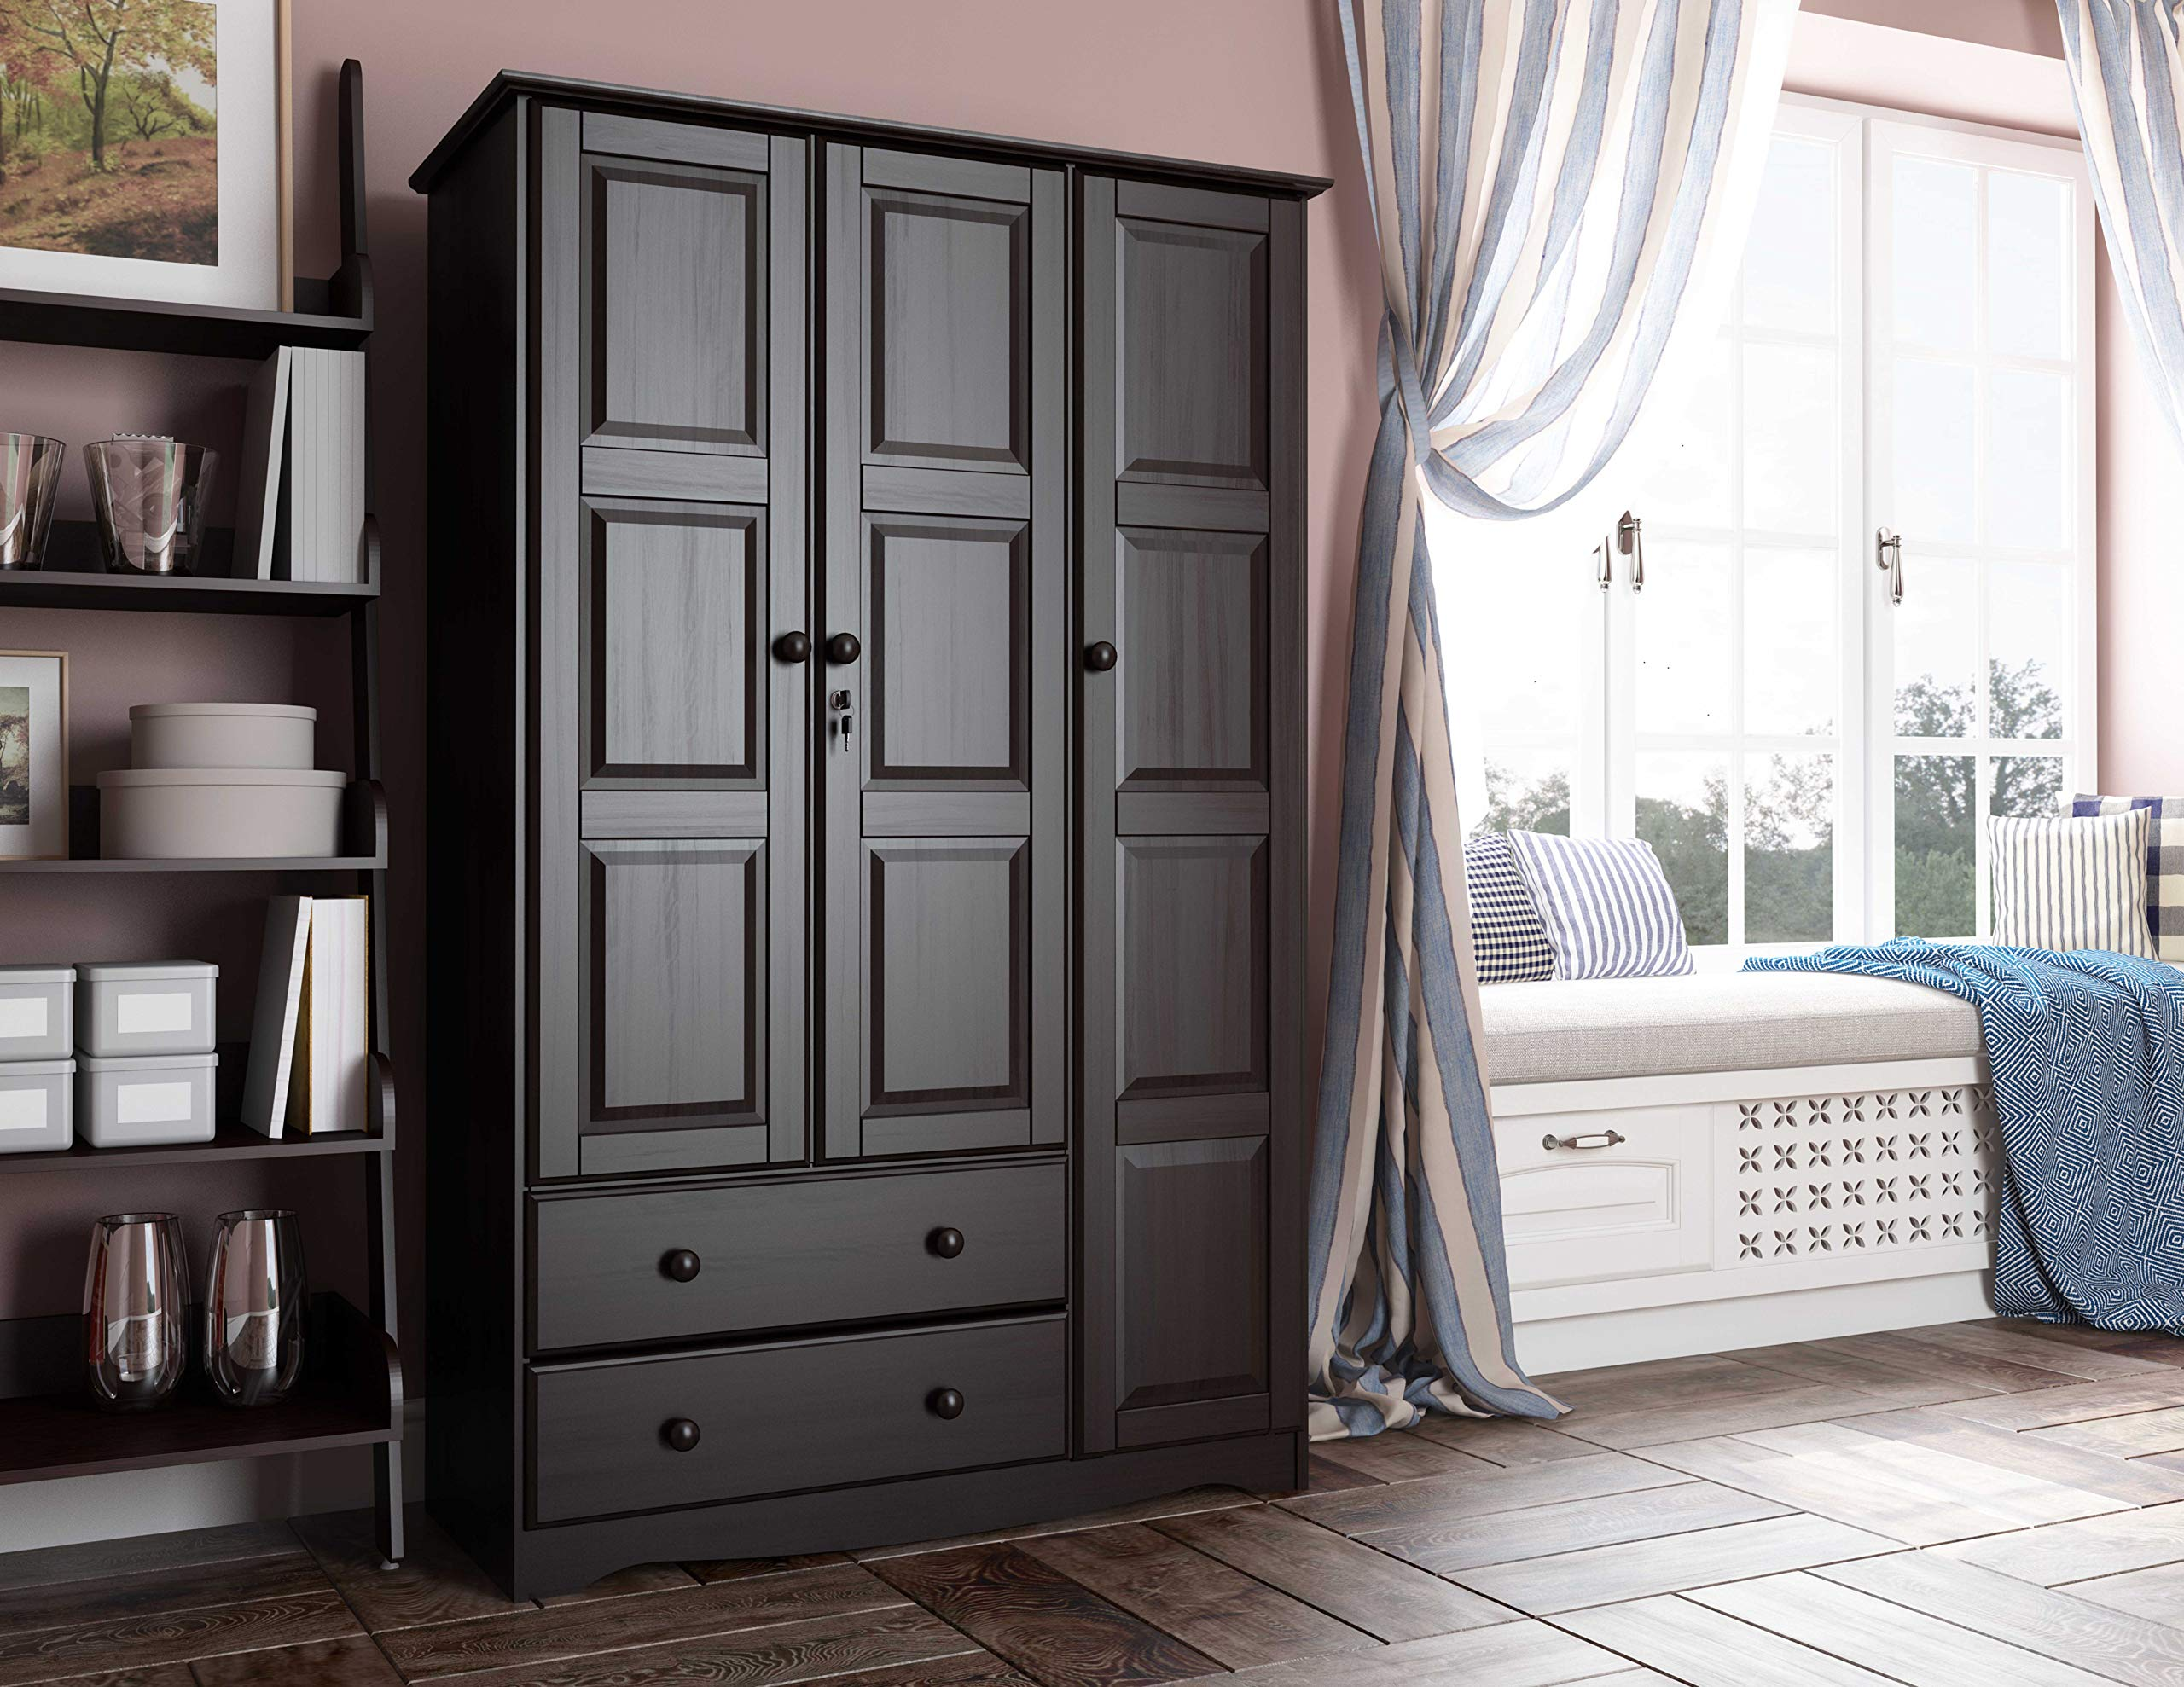 Amazon Com 100 Solid Wood Grand Wardrobe Armoire Closet By Palace Imports Java 46 W X 72 H X 21 D 4 Small Shelves 1 Clothing Rod 2 Drawers 1 Lock Included Additional Large Shelves